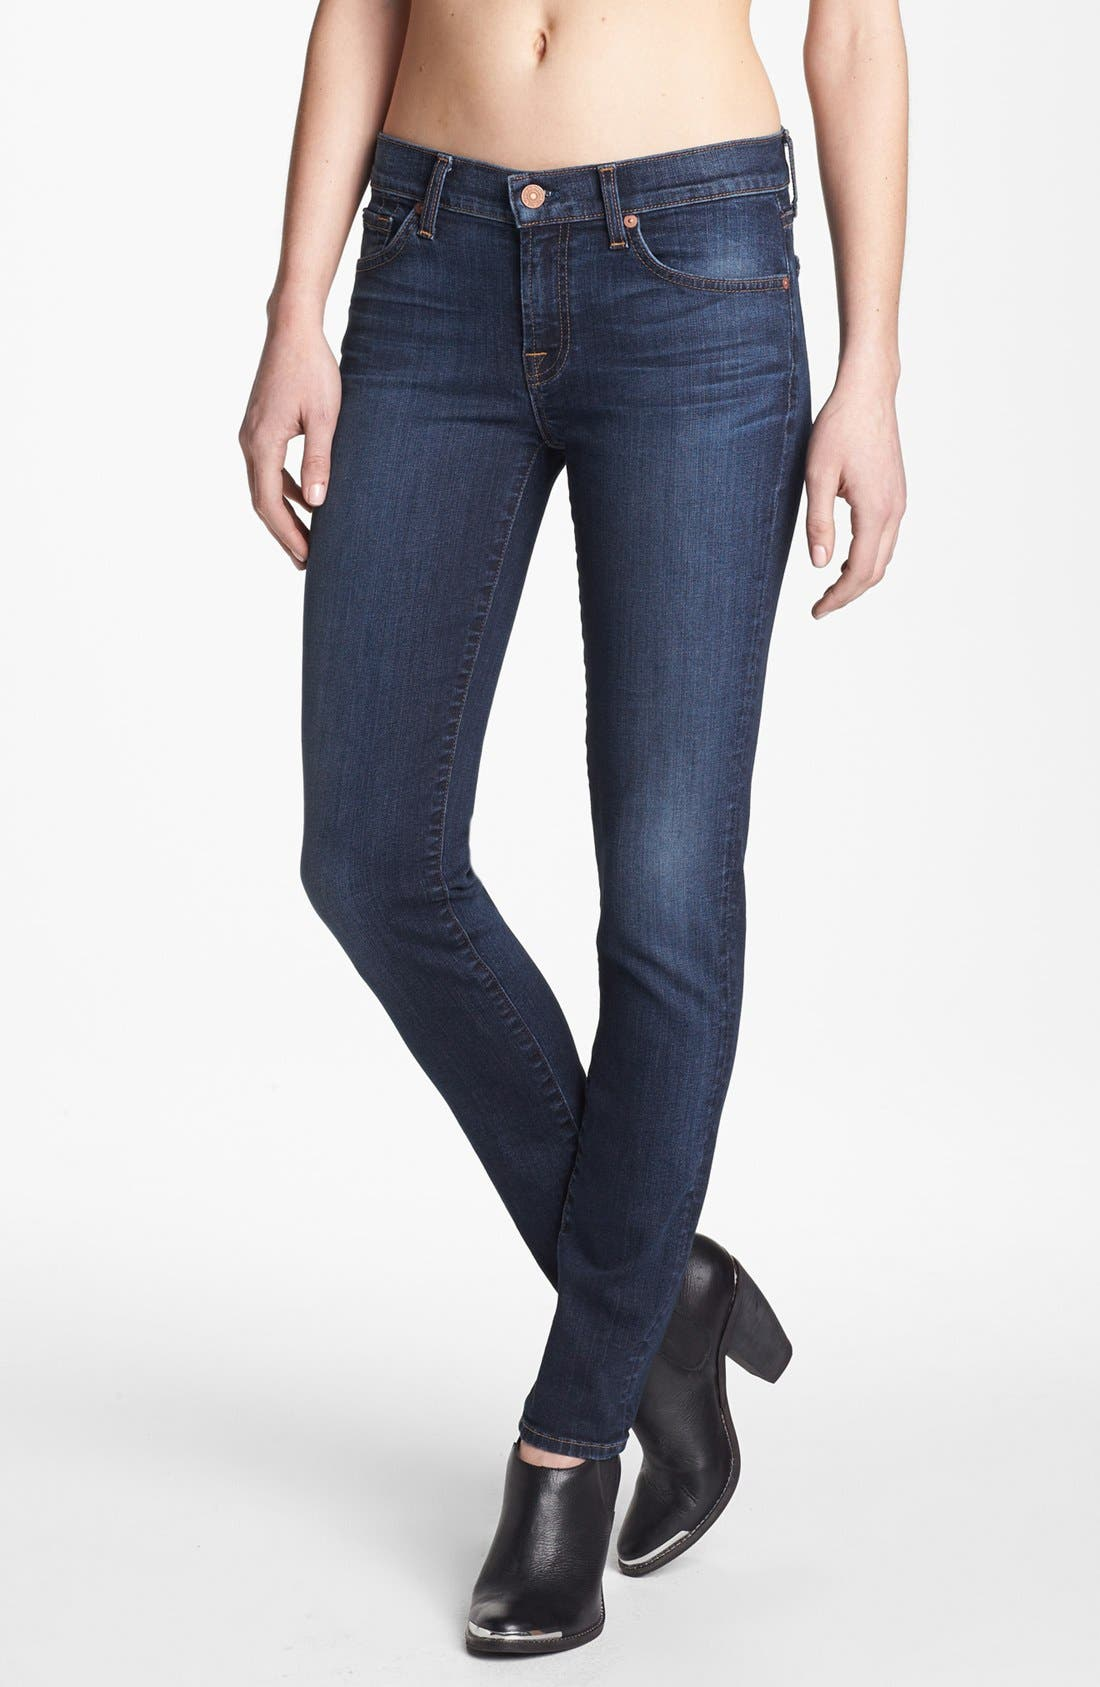 Alternate Image 1 Selected - 7 For All Mankind® 'The Slim Cigarette' Stretch Jeans (Camilo Blue)